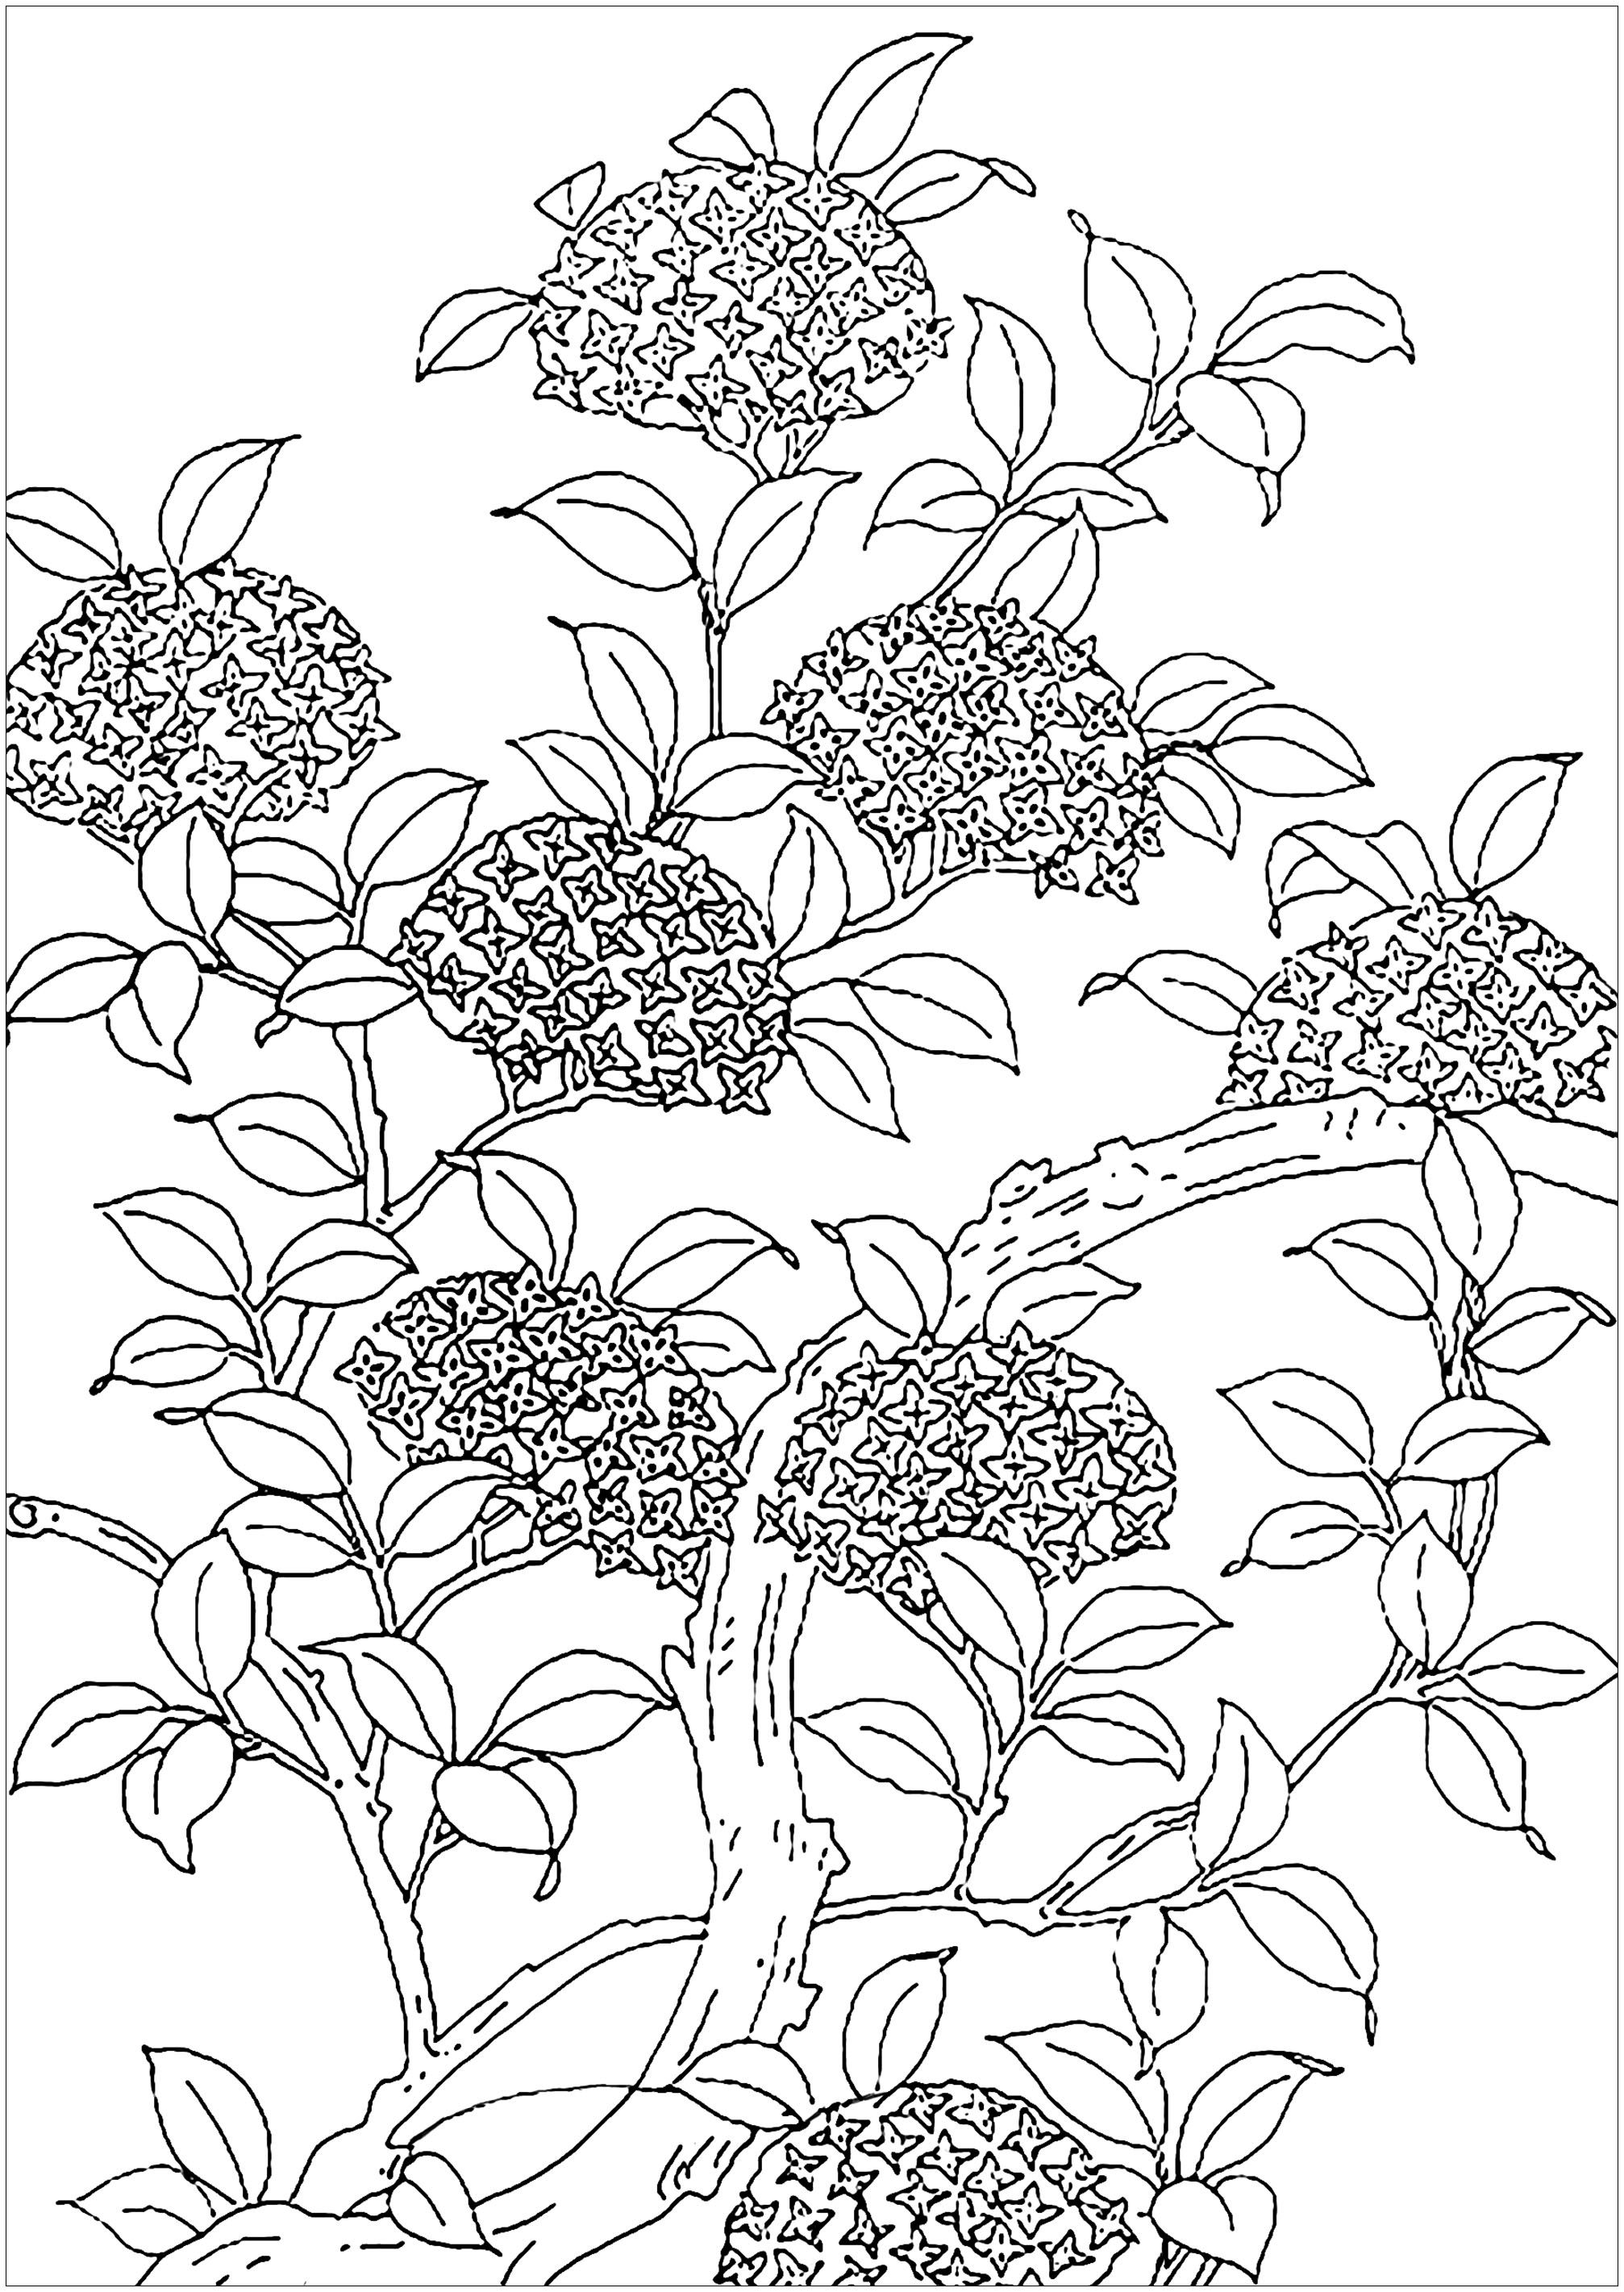 Flowered tree - Flowers & vegetation Coloring Pages for ...